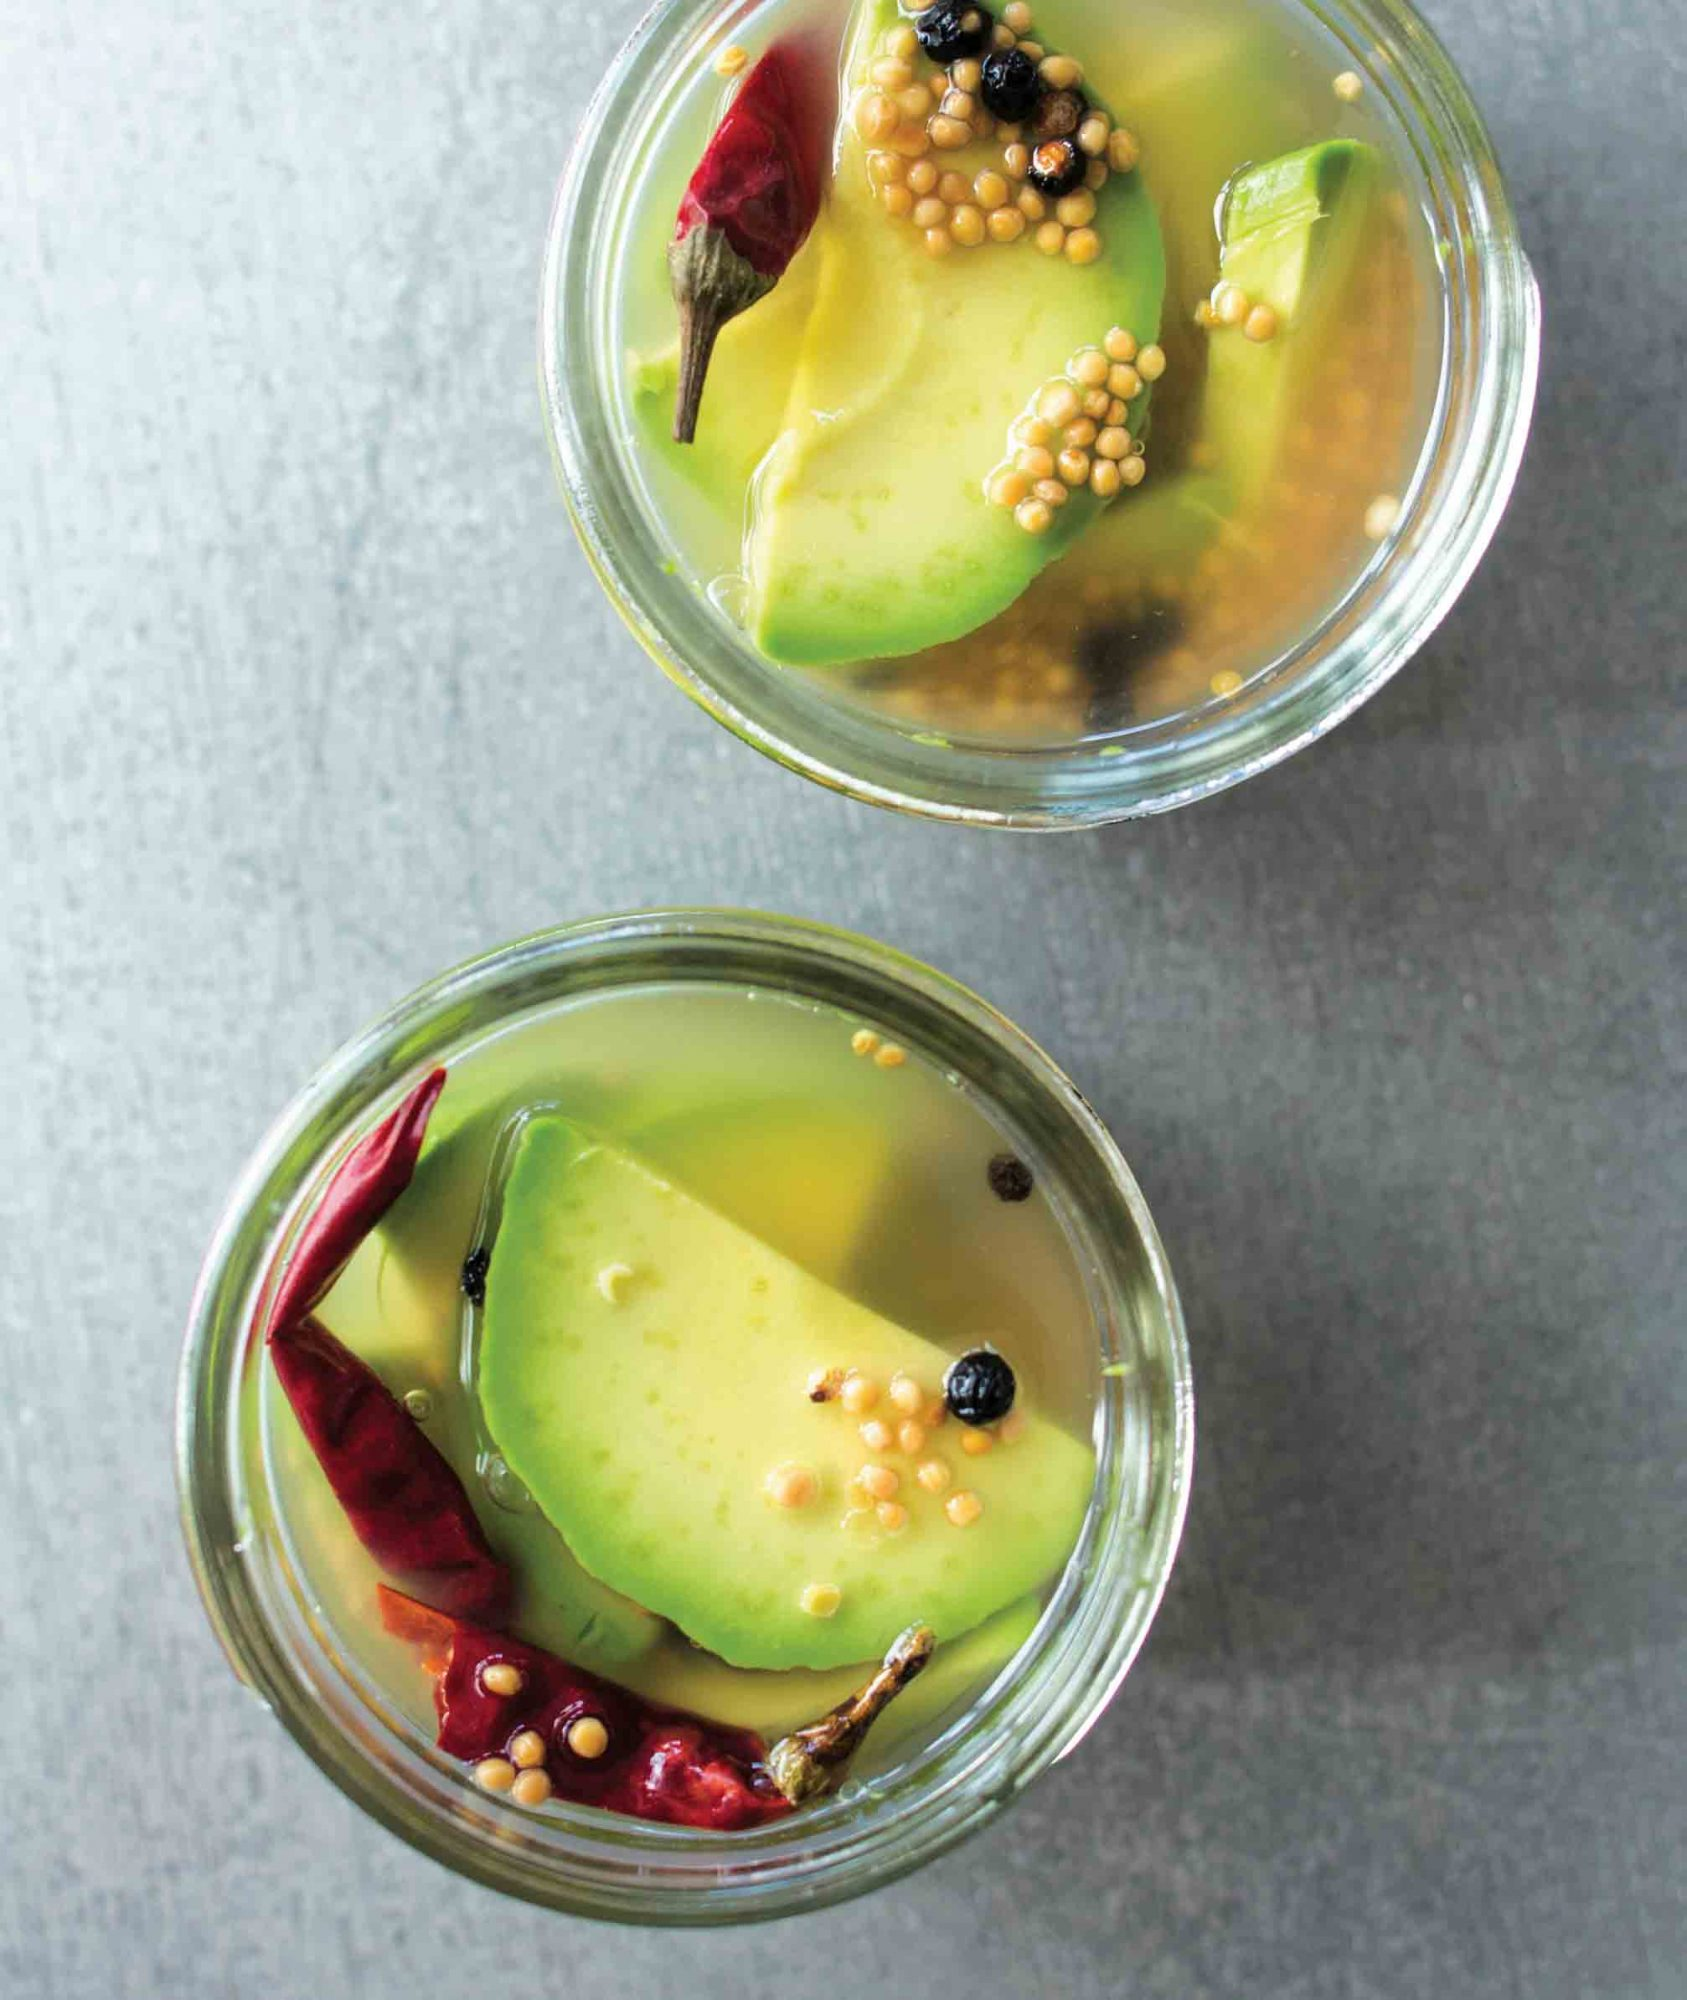 avocado-a-say-avocado-pickles